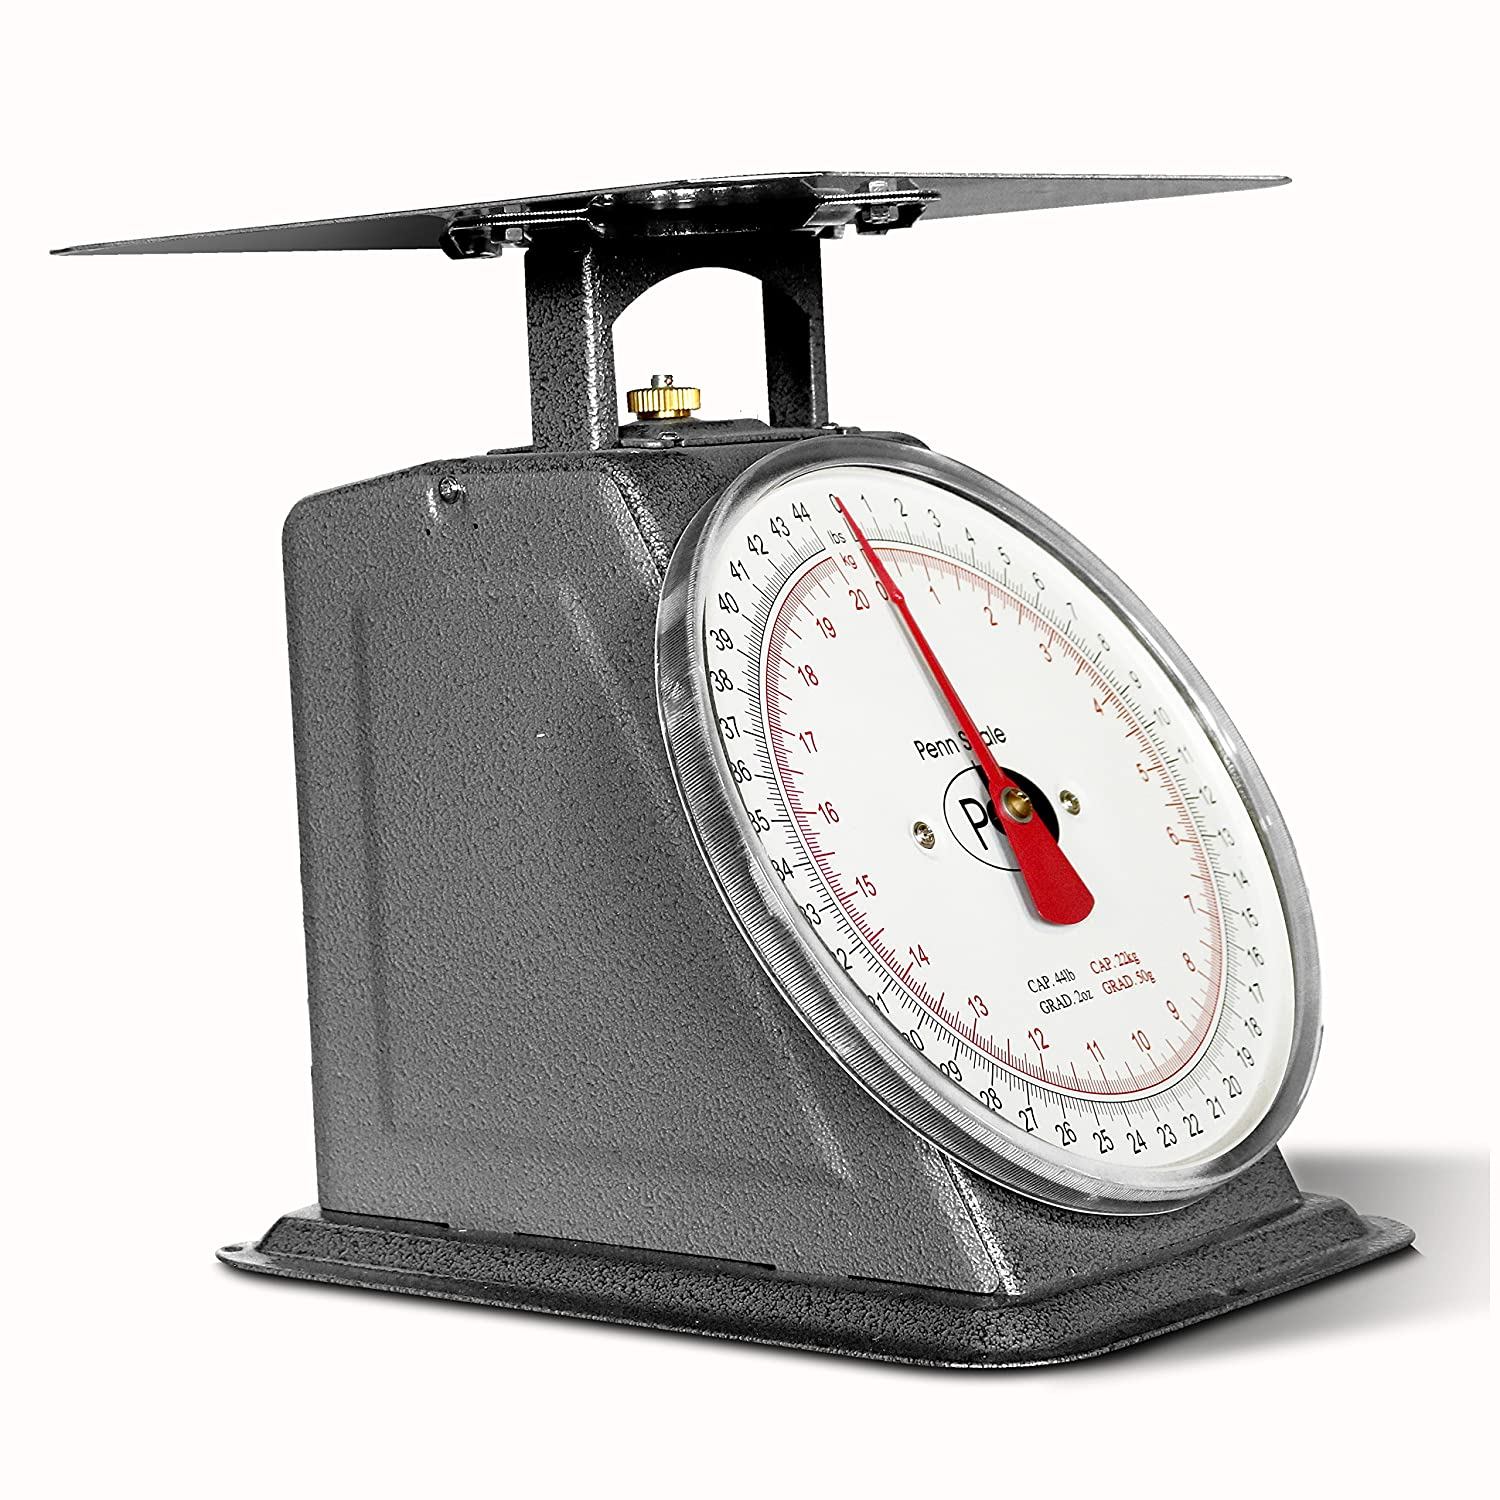 Penn Scale P-44 Top Loading Fixed Dial Scale 44 lb